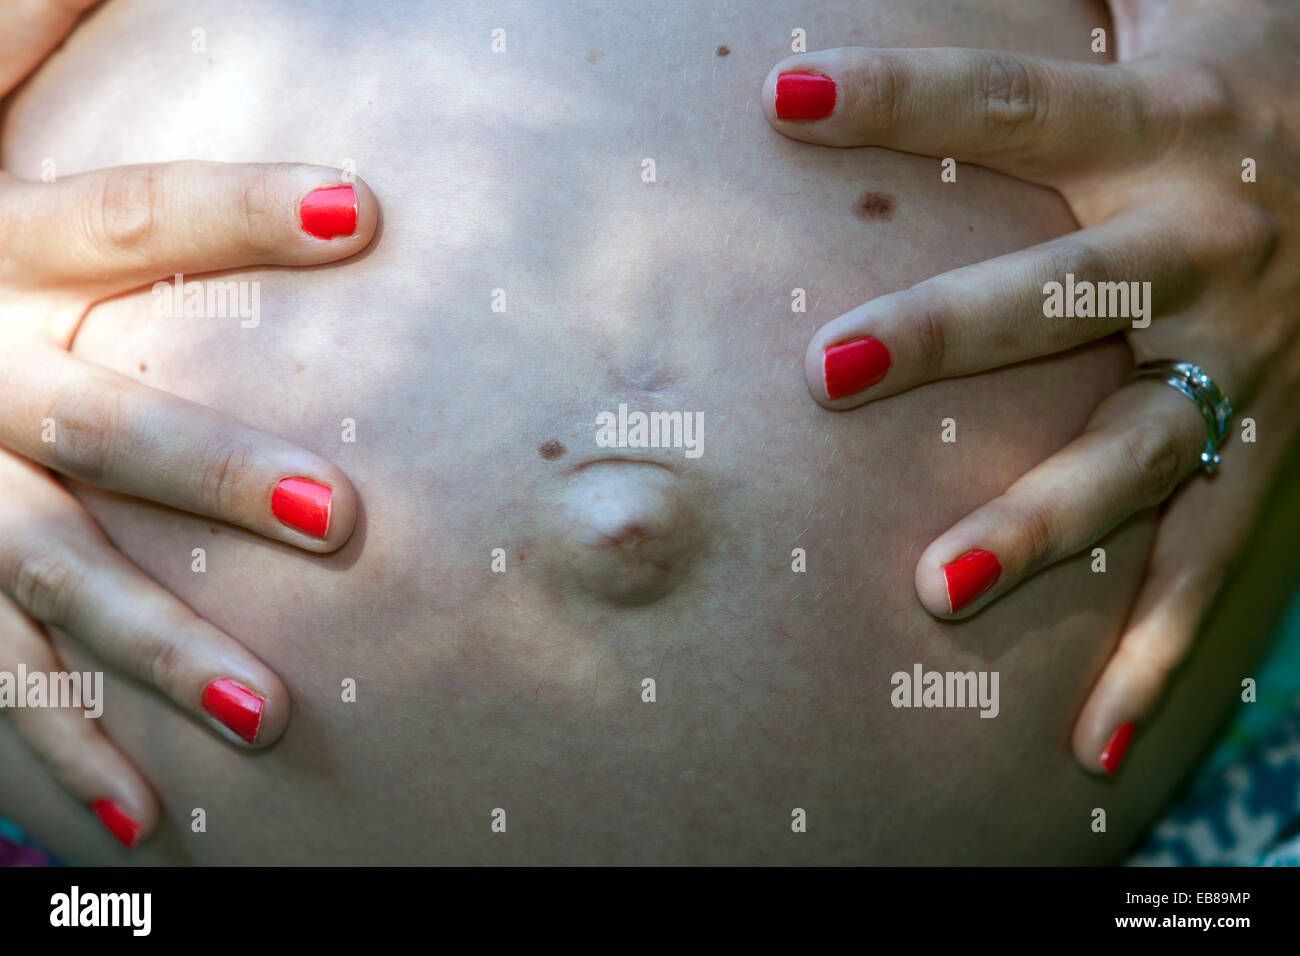 Red Nails Stockfotos & Red Nails Bilder - Alamy